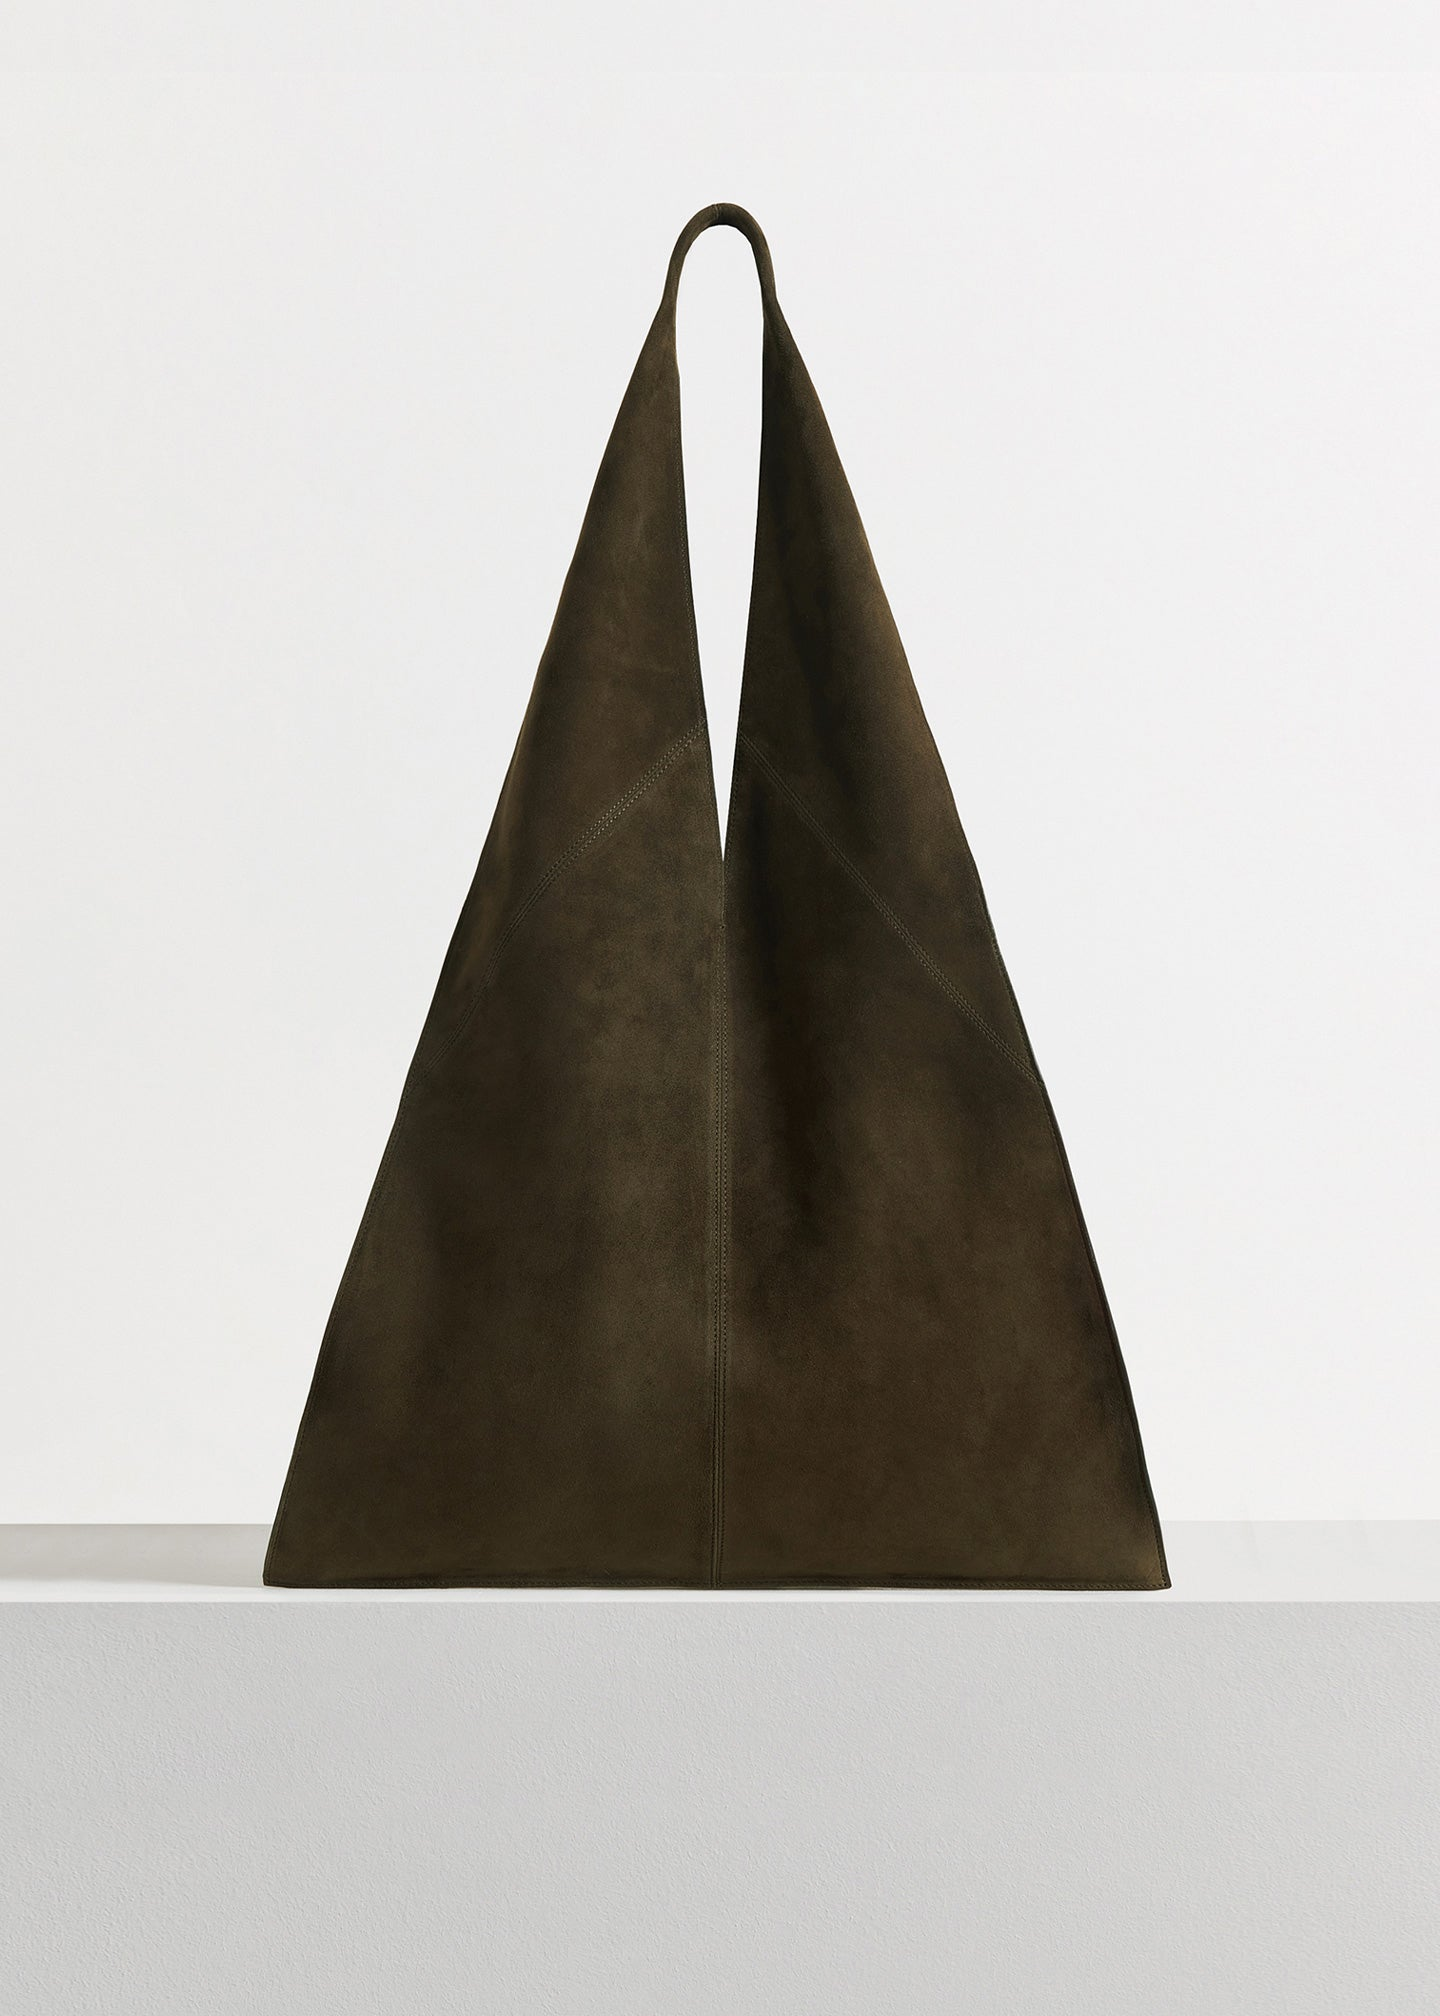 CO - Triangle Bag in Suede - Taupe